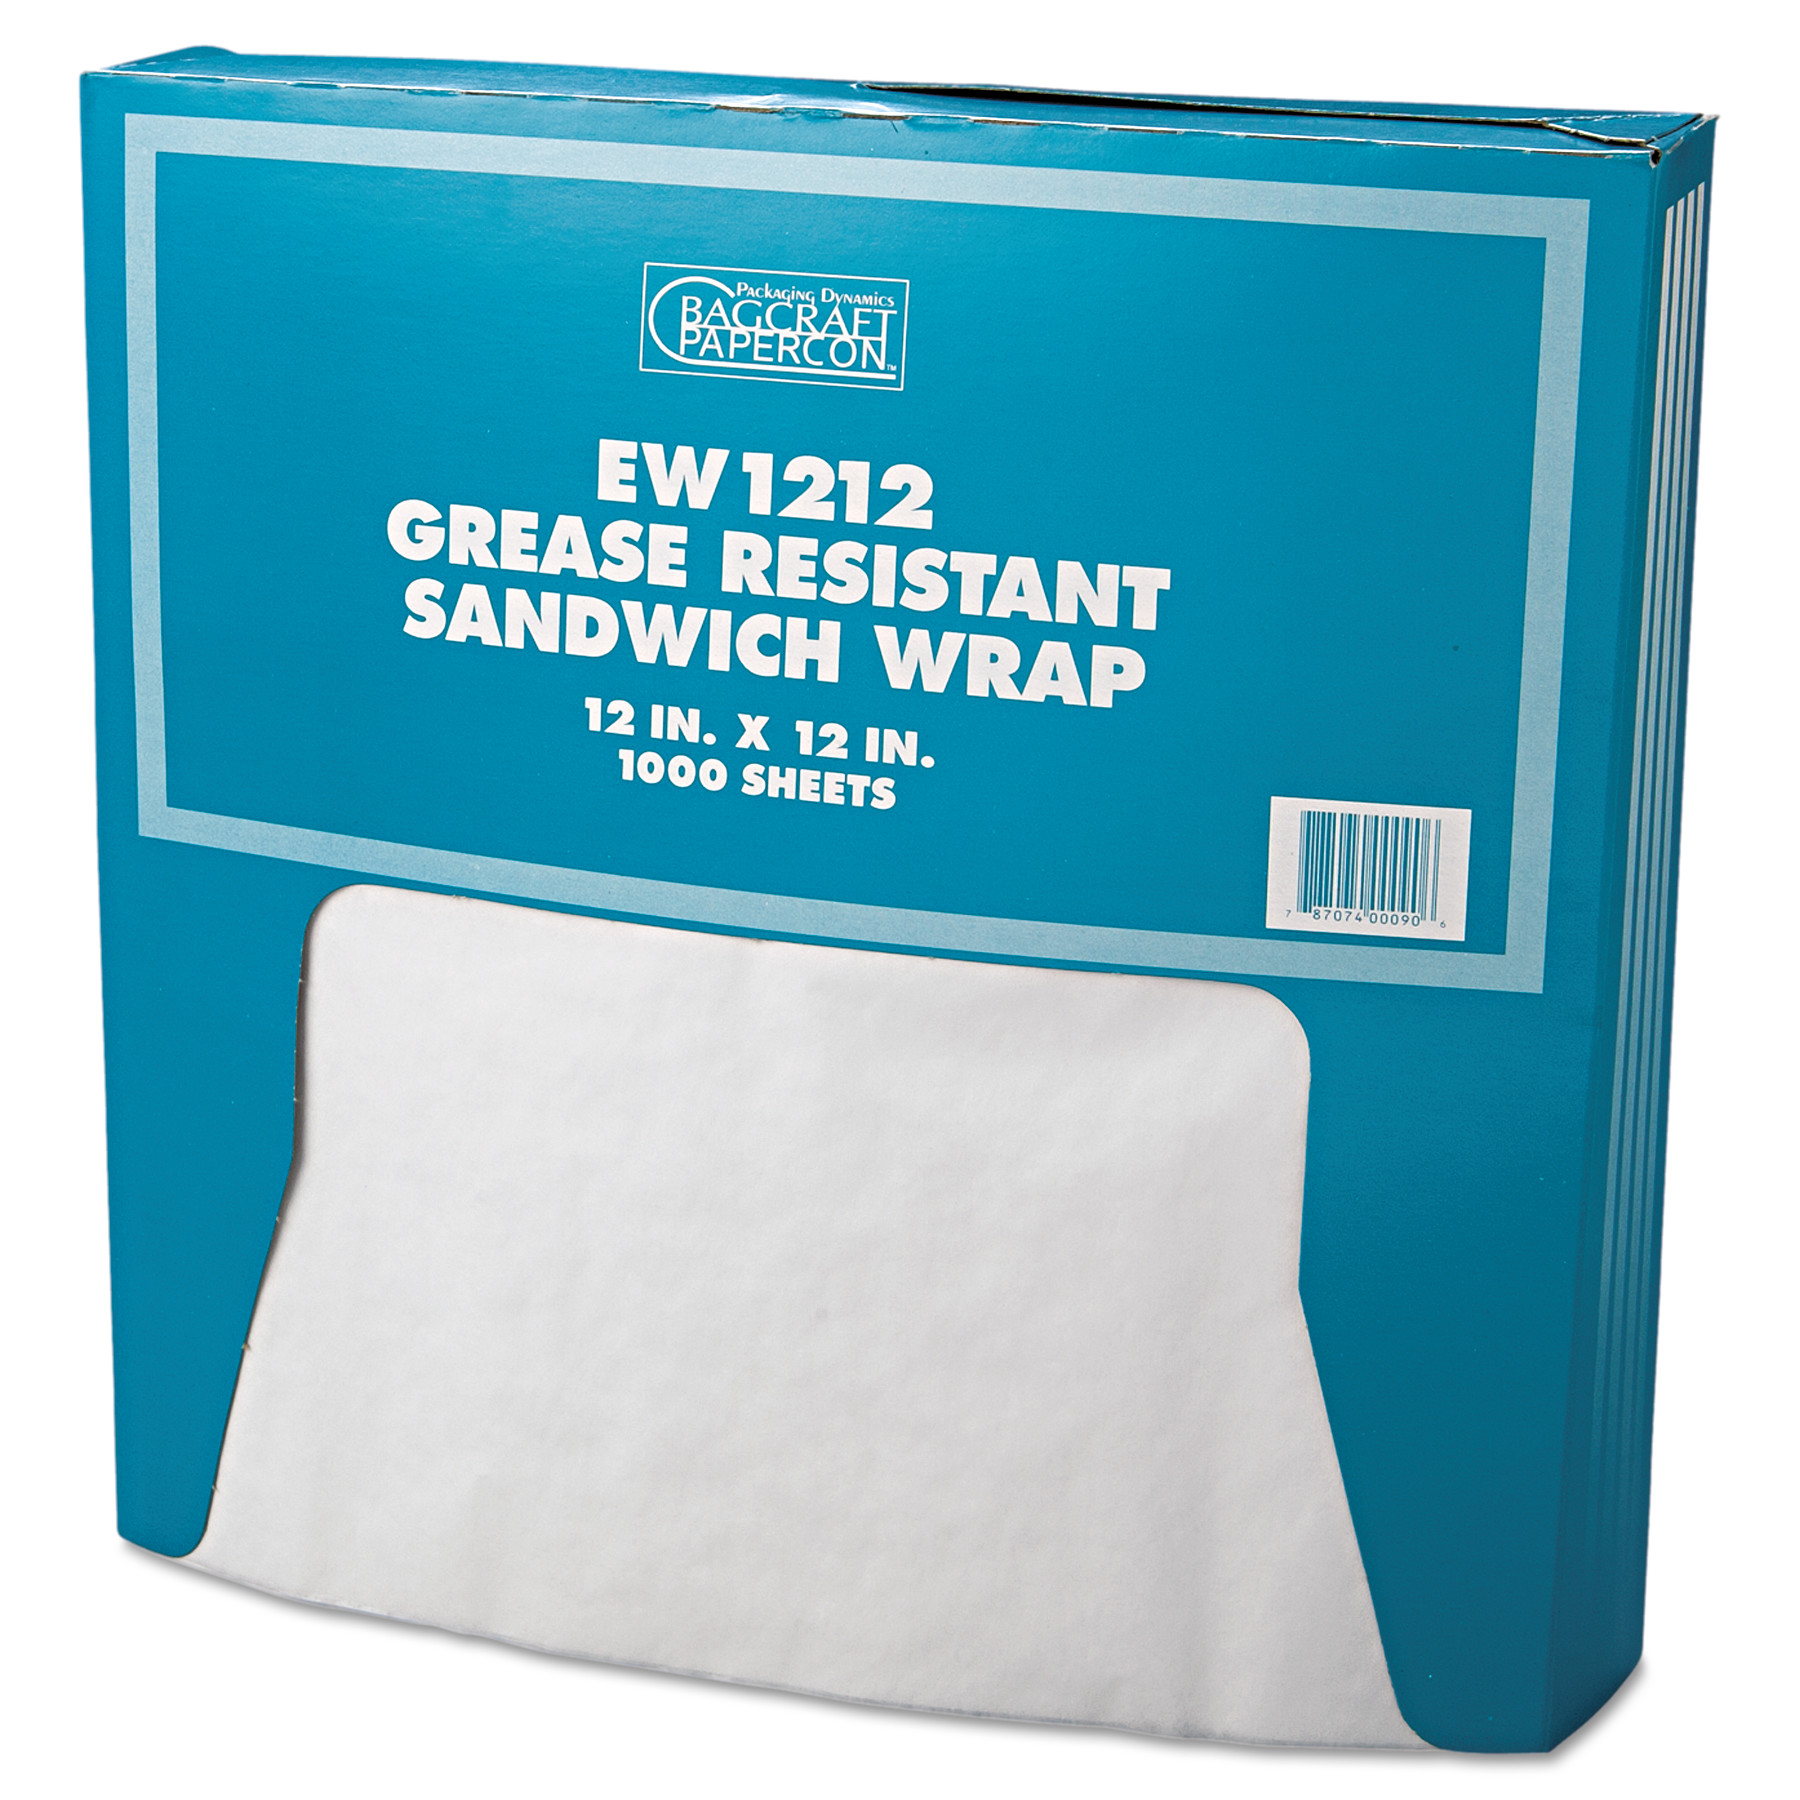 Bagcraft Papercon  12x12 Grease-Resistant Paper Wrap/Liner, White, 1000 count, (Pack of 5)